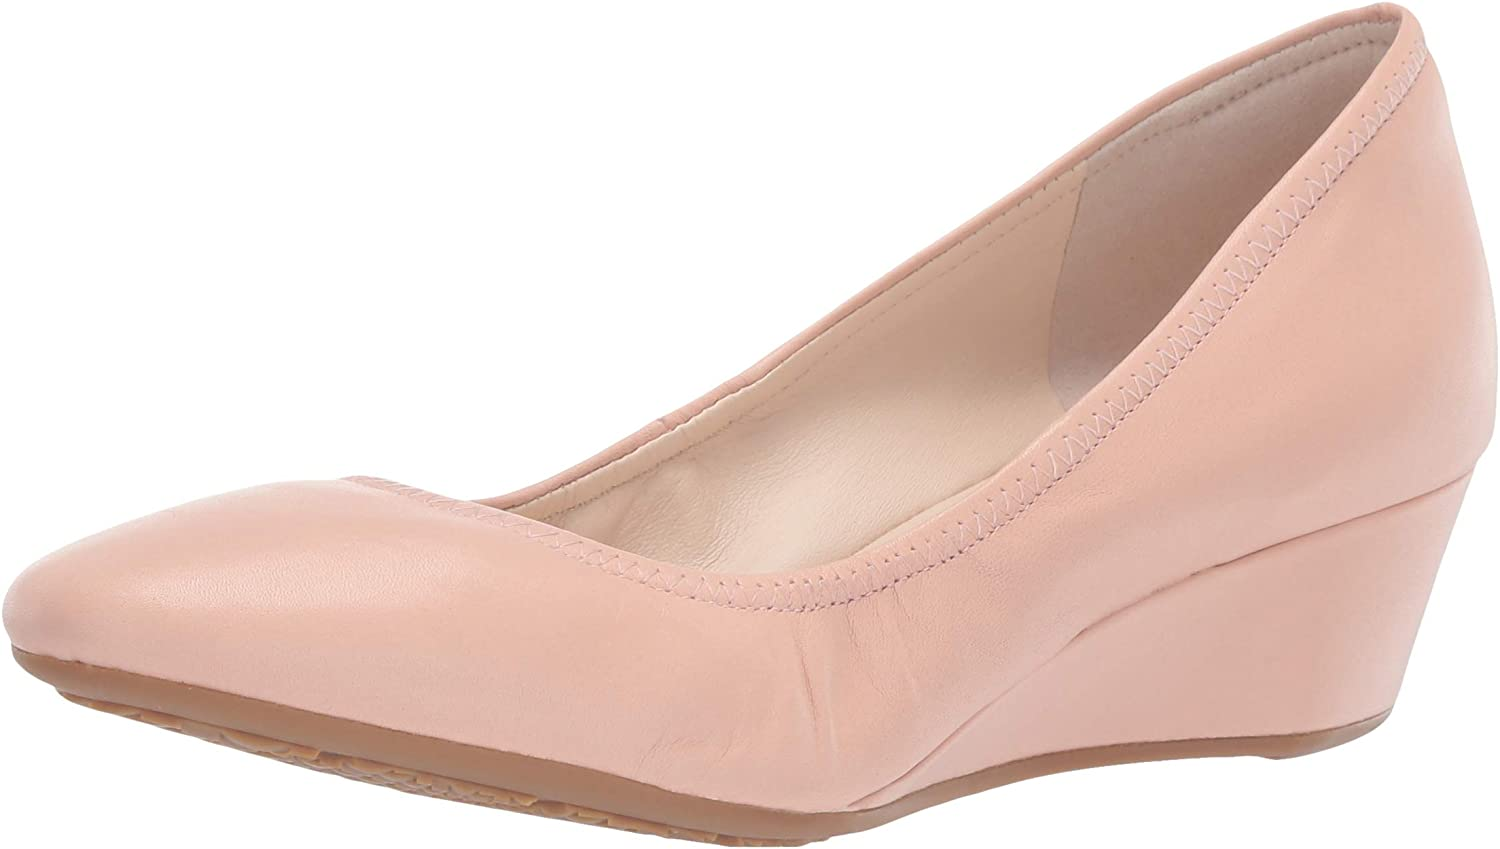 Cole Haan Women's Sadie Wedge Sale Special 40% OFF Cheap Sale Price 40mm